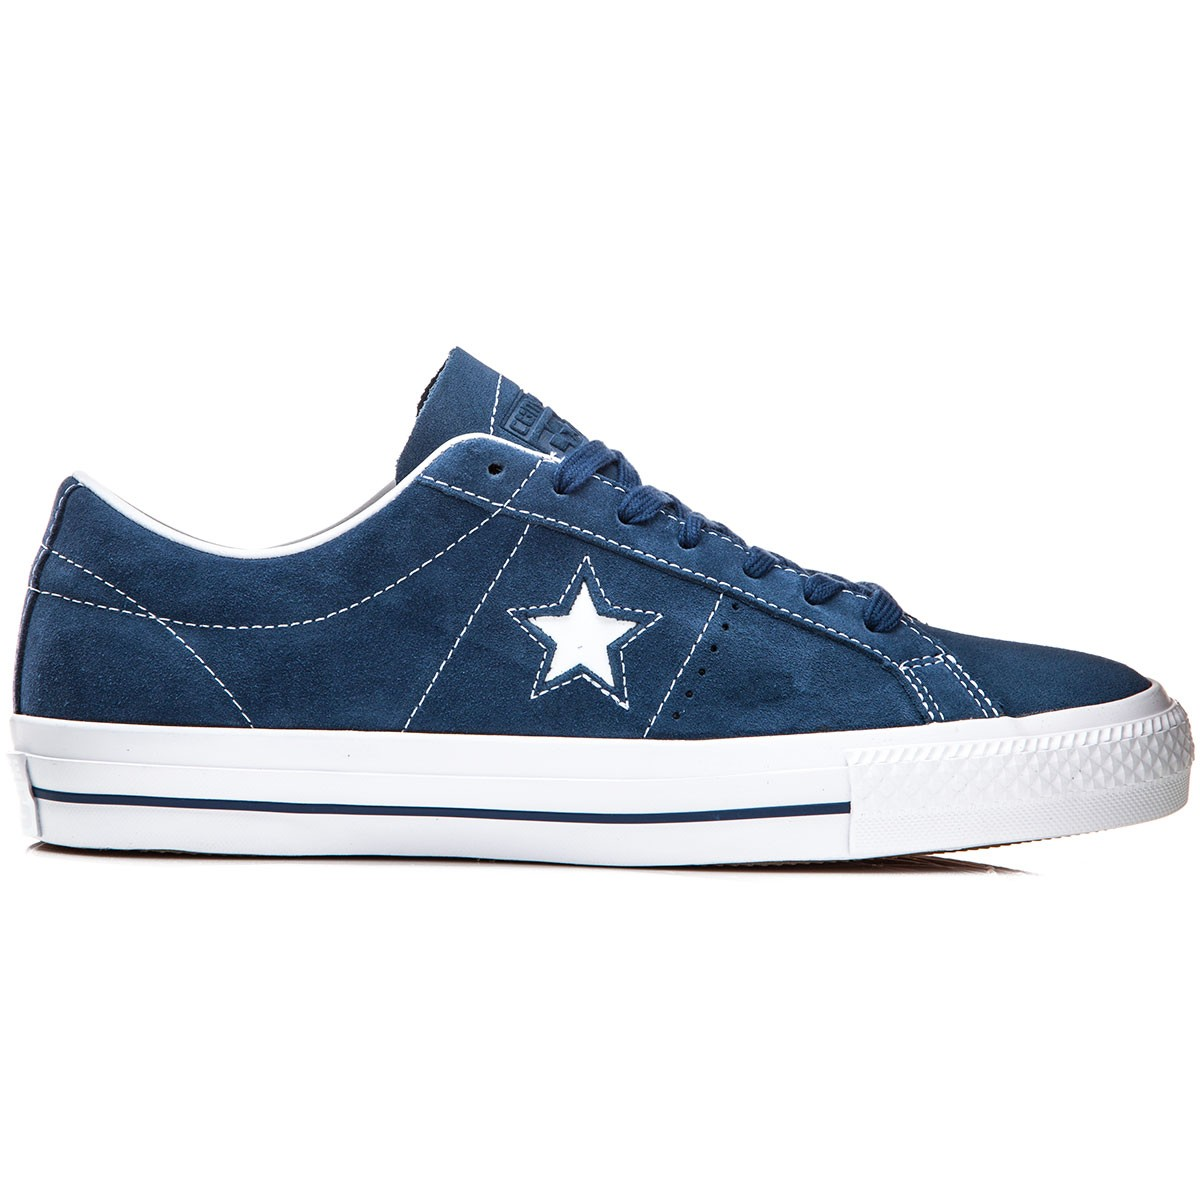 Converse One Star Skate Suede Shoes